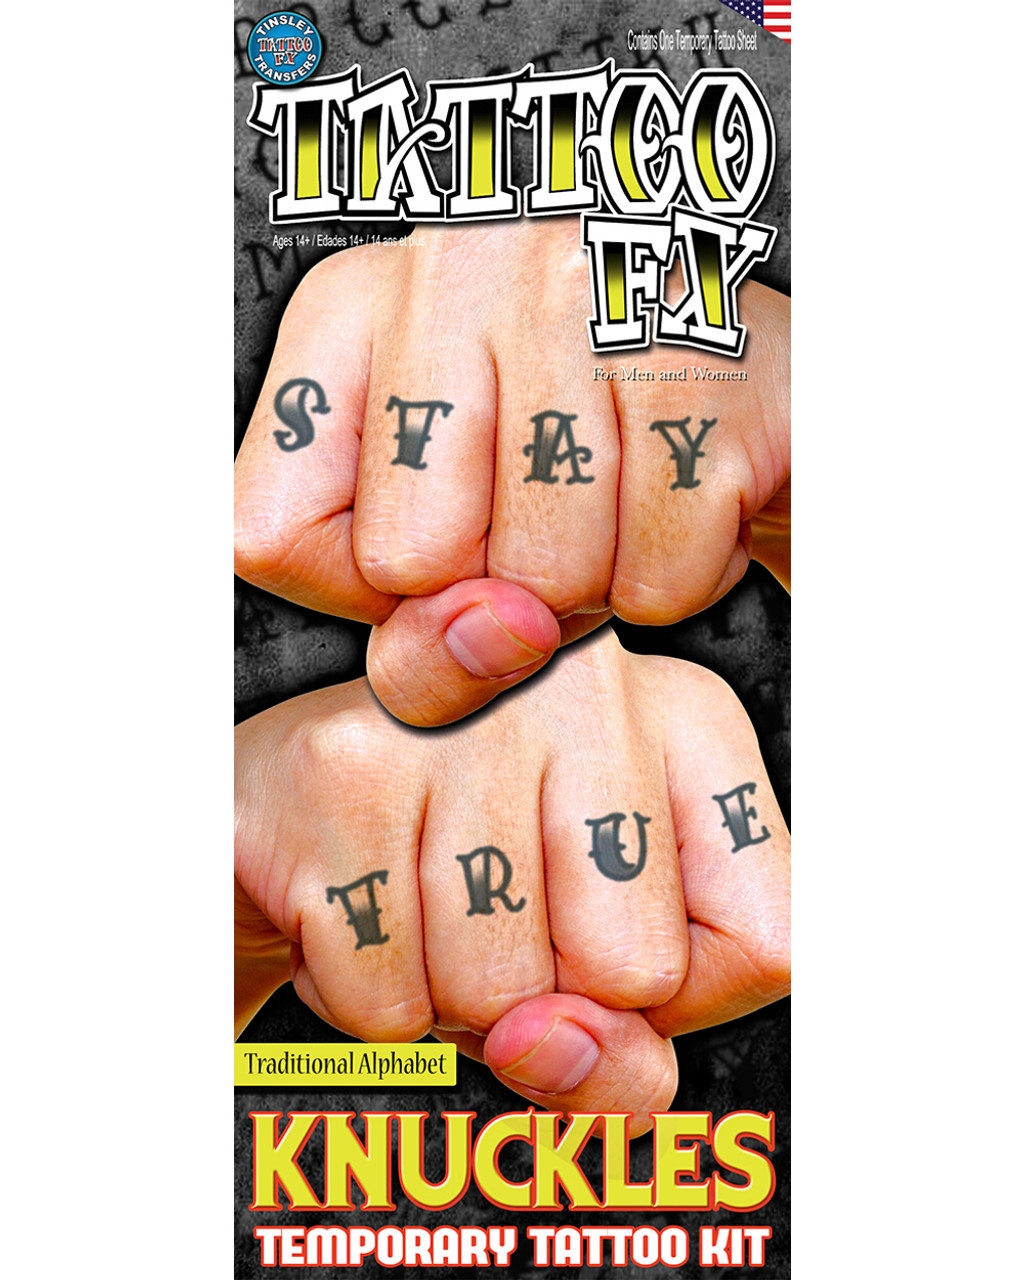 Traditional Alphabet Hand Knuckle Finger Tattoos